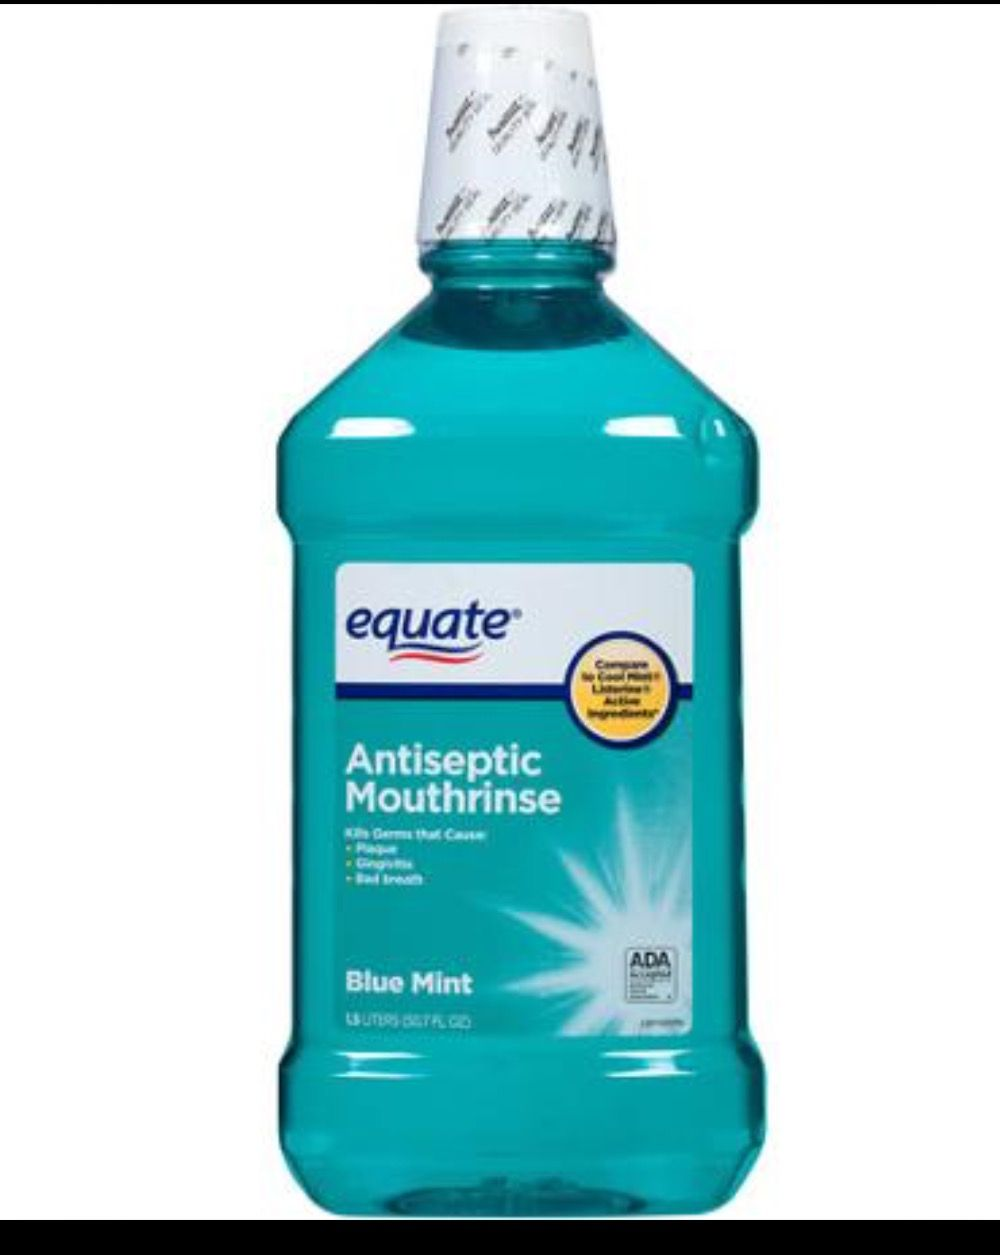 Recipe To Get Rid Of Mosquitoes For Up To 80 Days 1 Large Bottle Mint Flavored Mouthwash 3 Cups Epsom Salts 3 12 Oz Cans Mosquito Mosquito Spray Mouthwash,Should I Paint My Ceiling Beams White